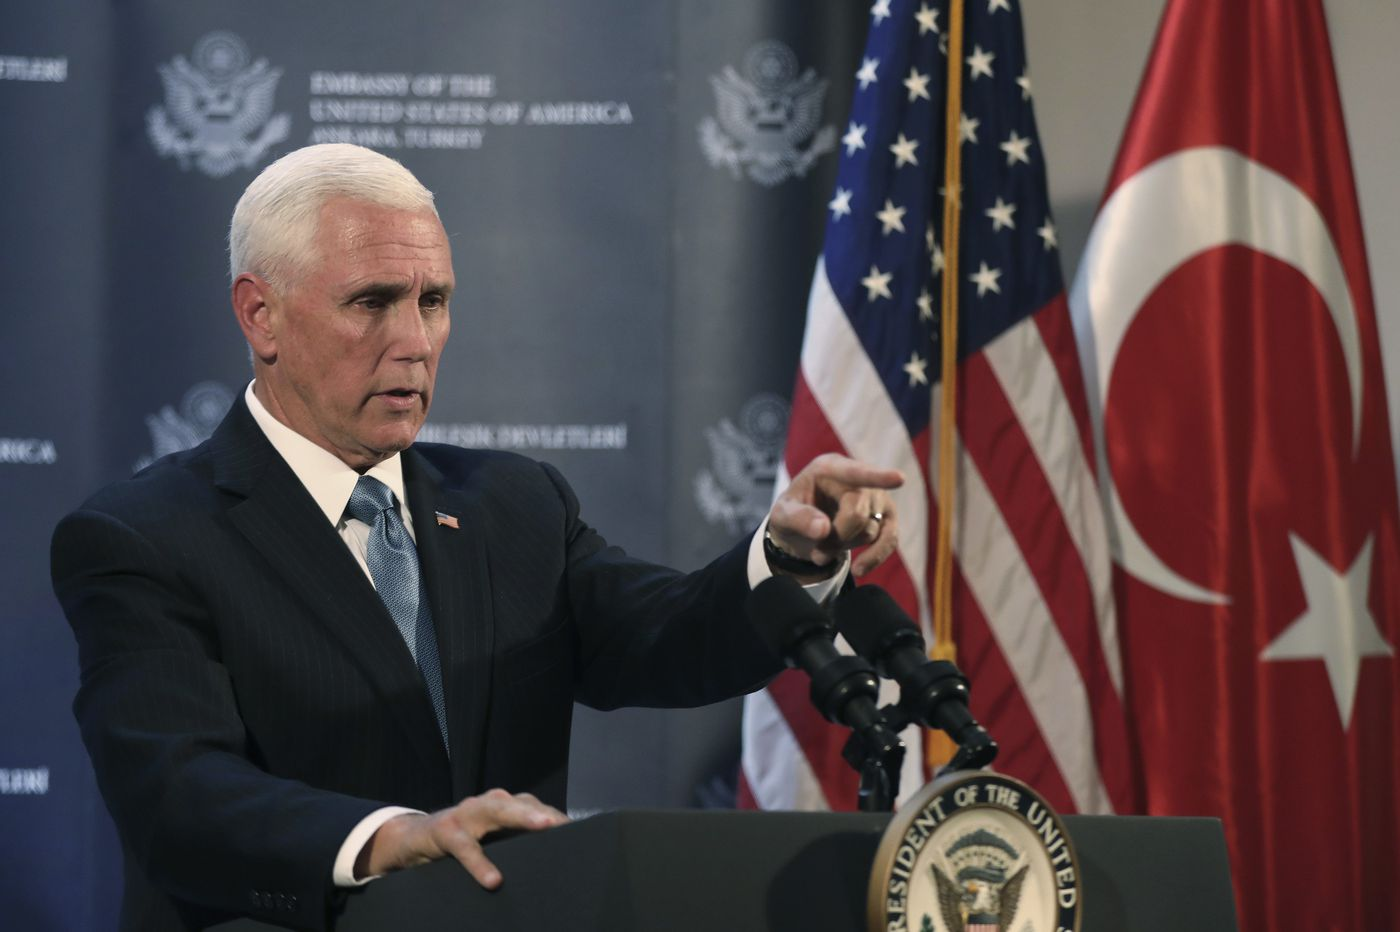 Pence to visit Pennsylvania glass maker, tout trade pact